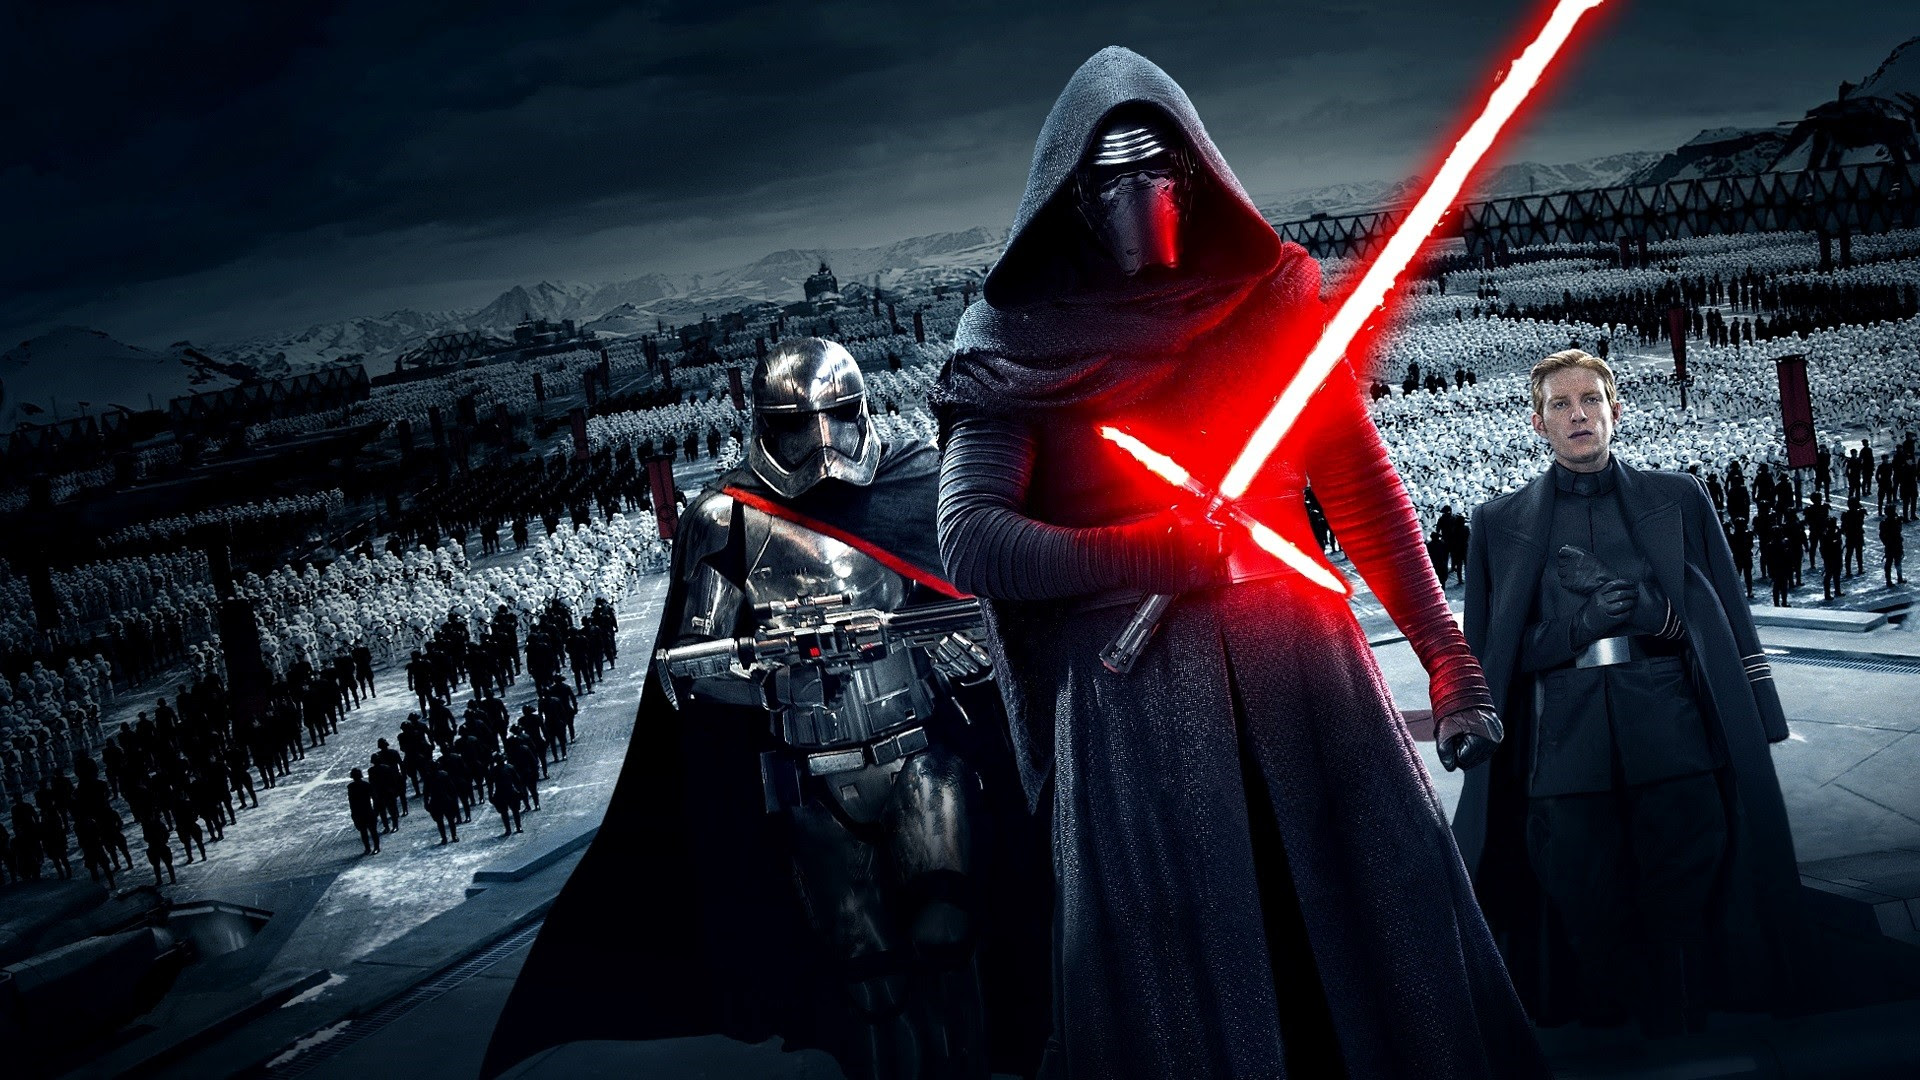 Star Wars Episode 7 Hd Wallpaper 64 Images